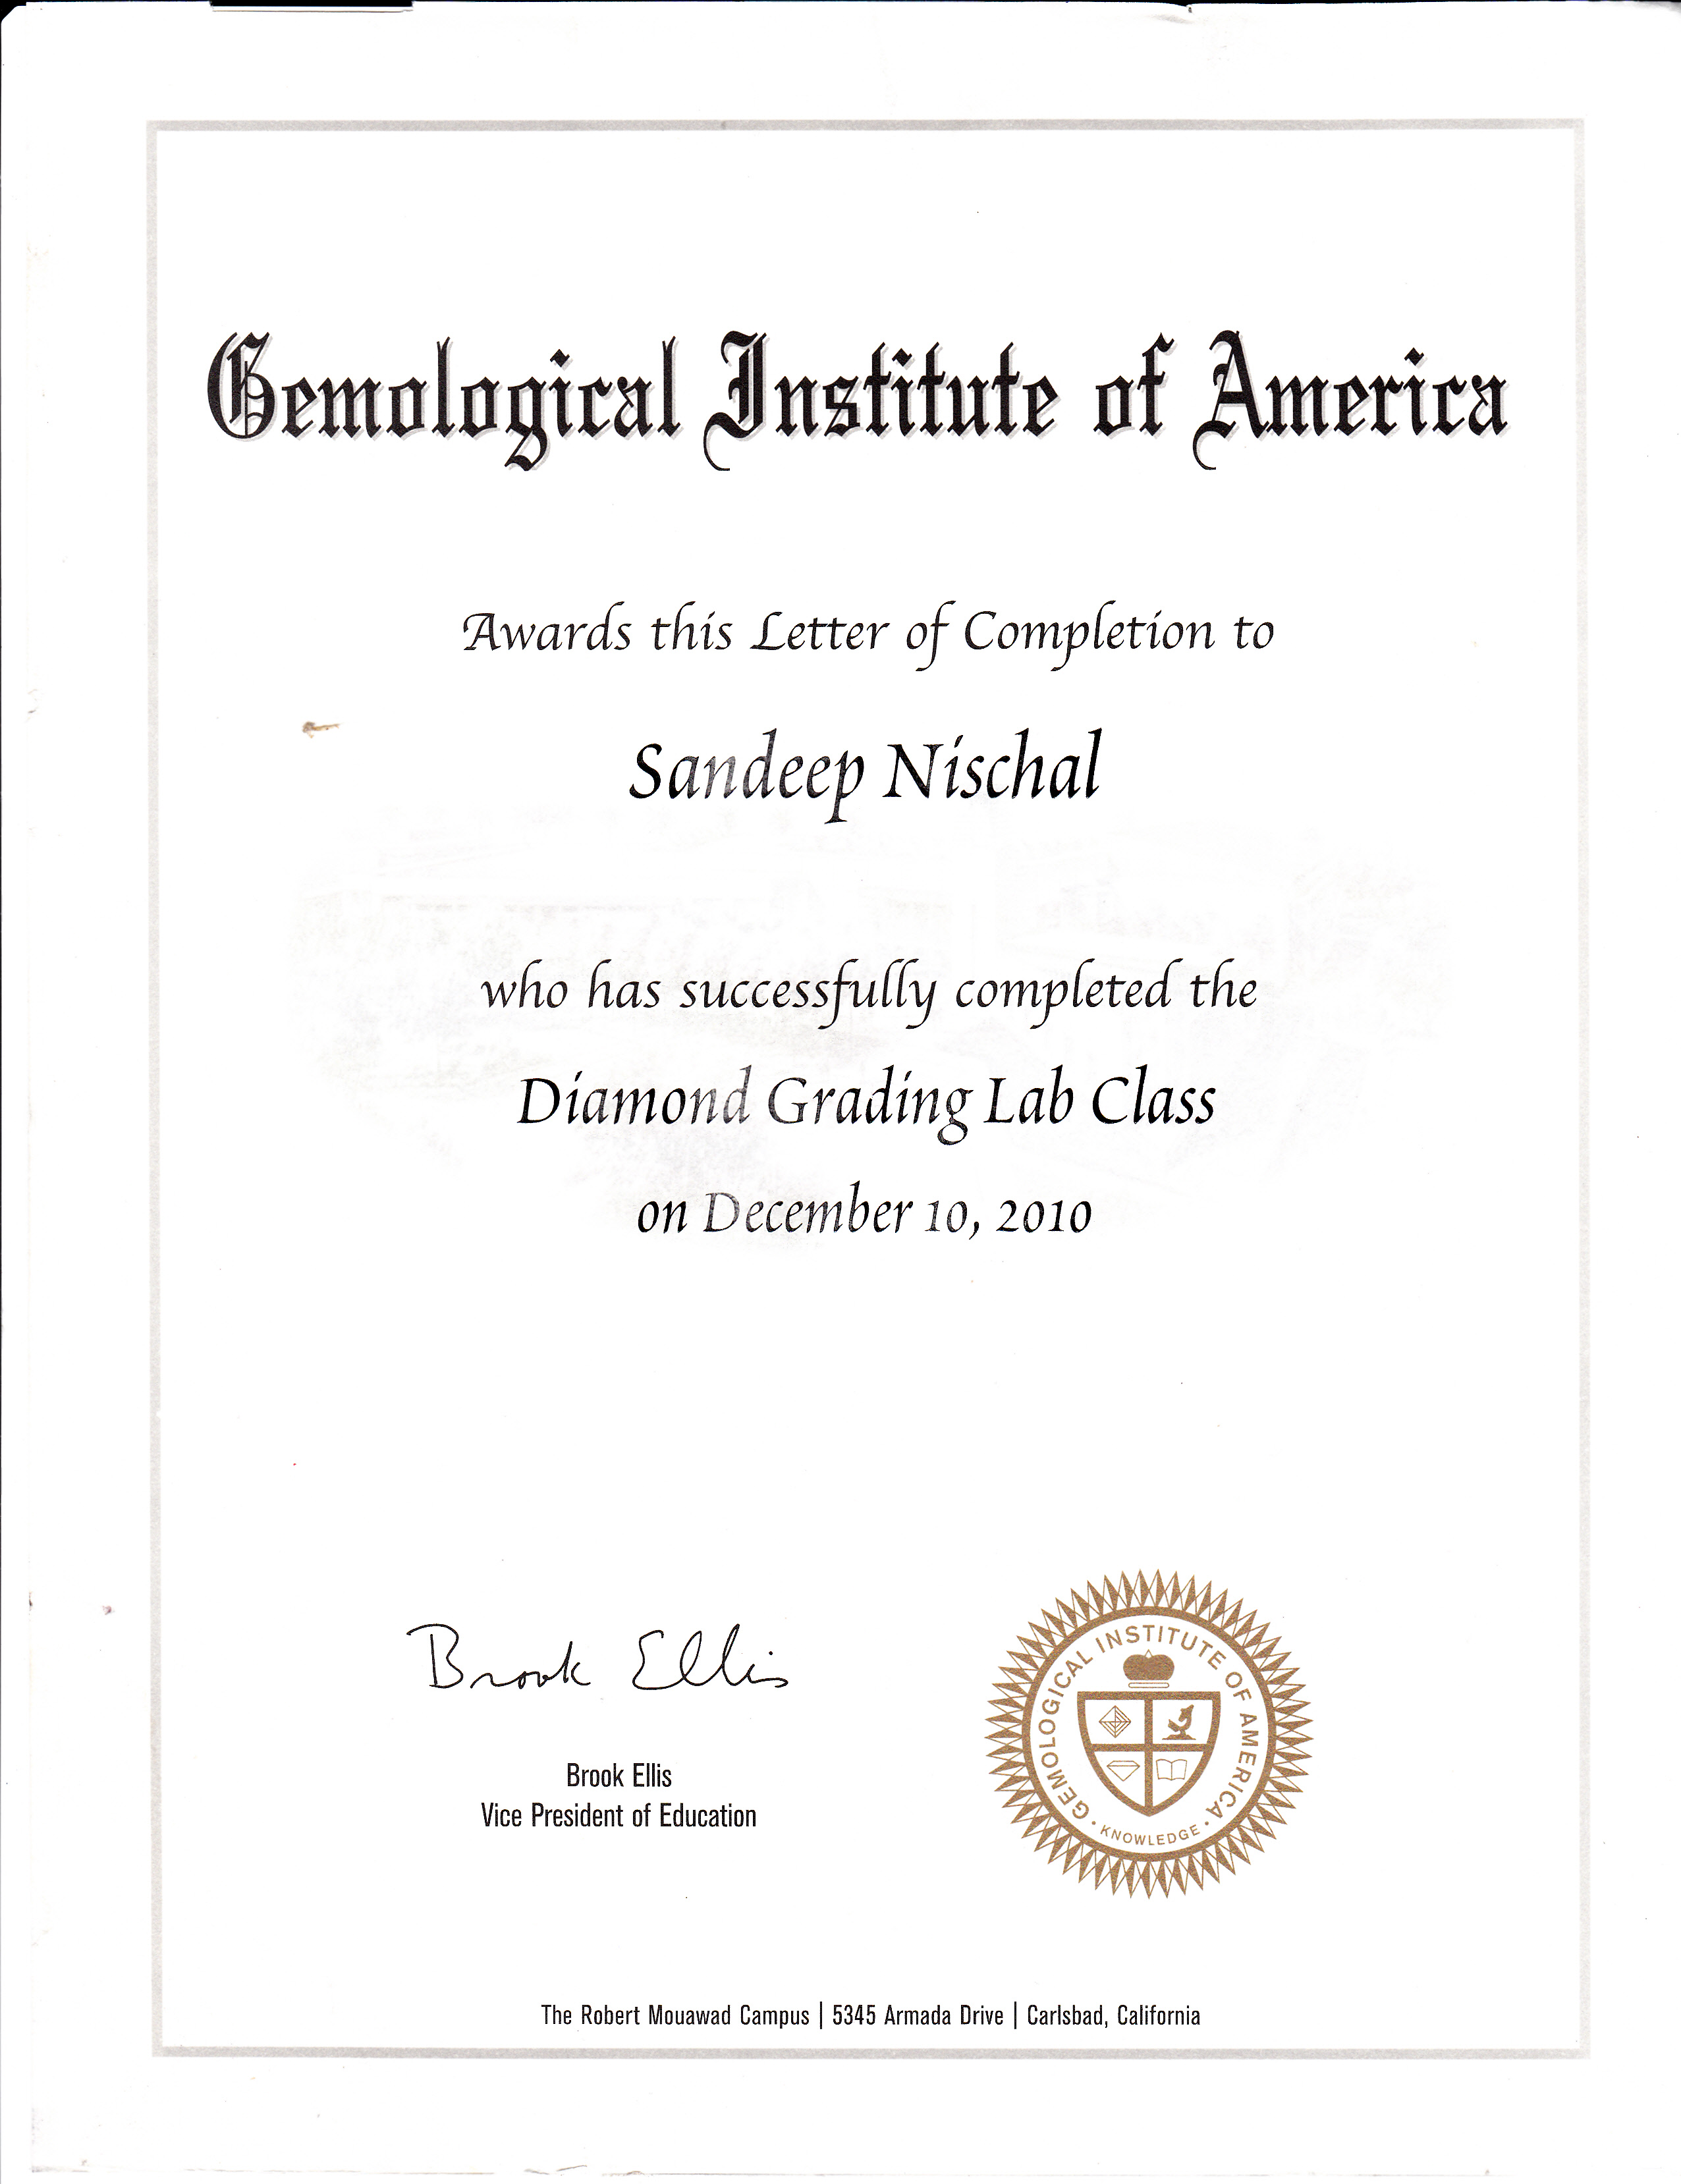 What is the Gemological Institute of America?